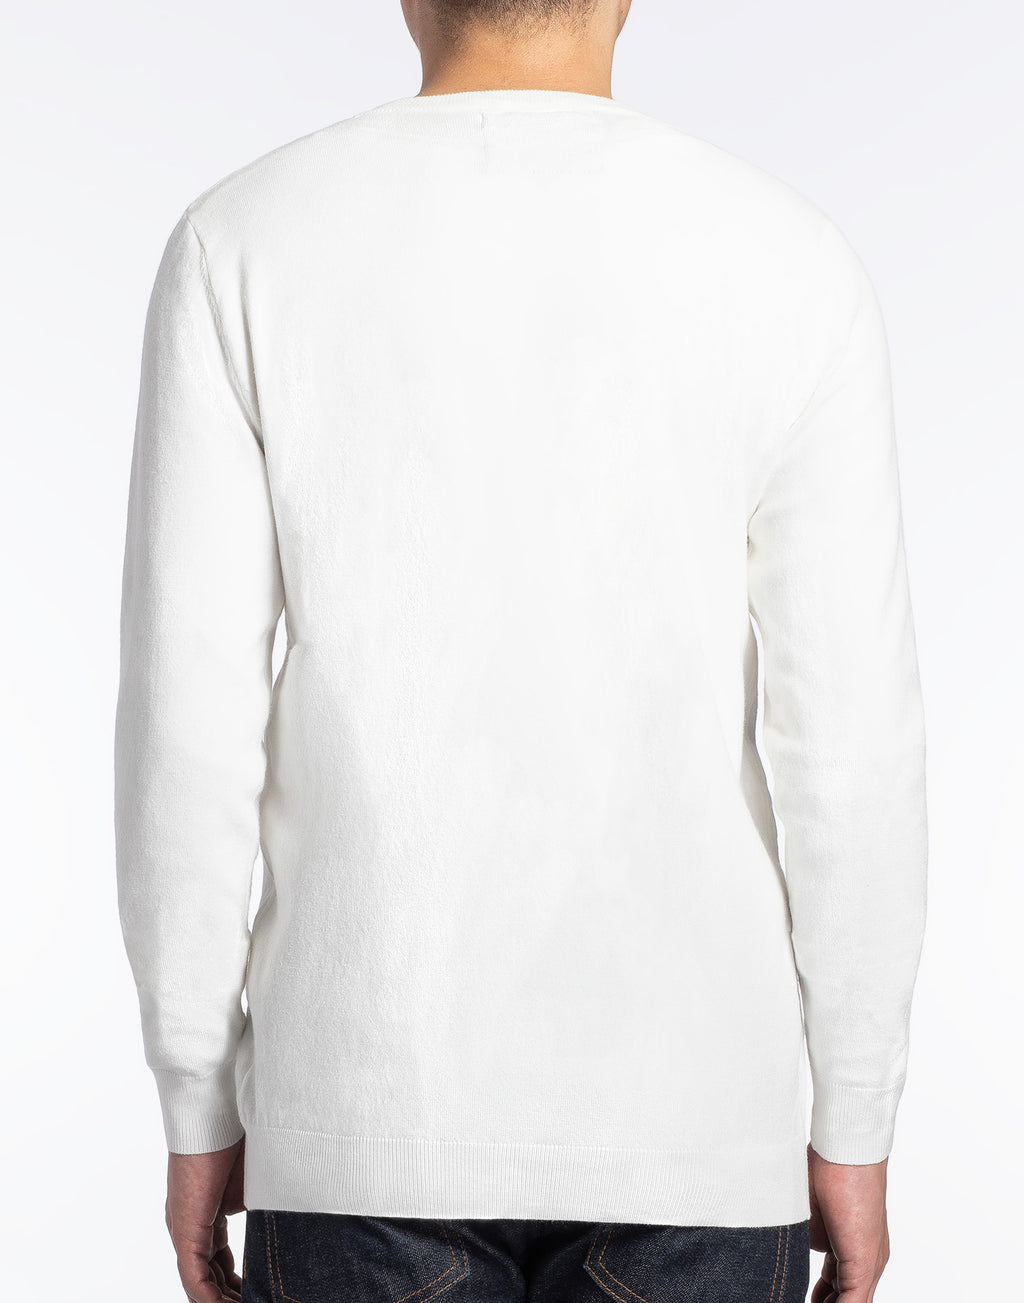 Ivory White Crewneck Sweater